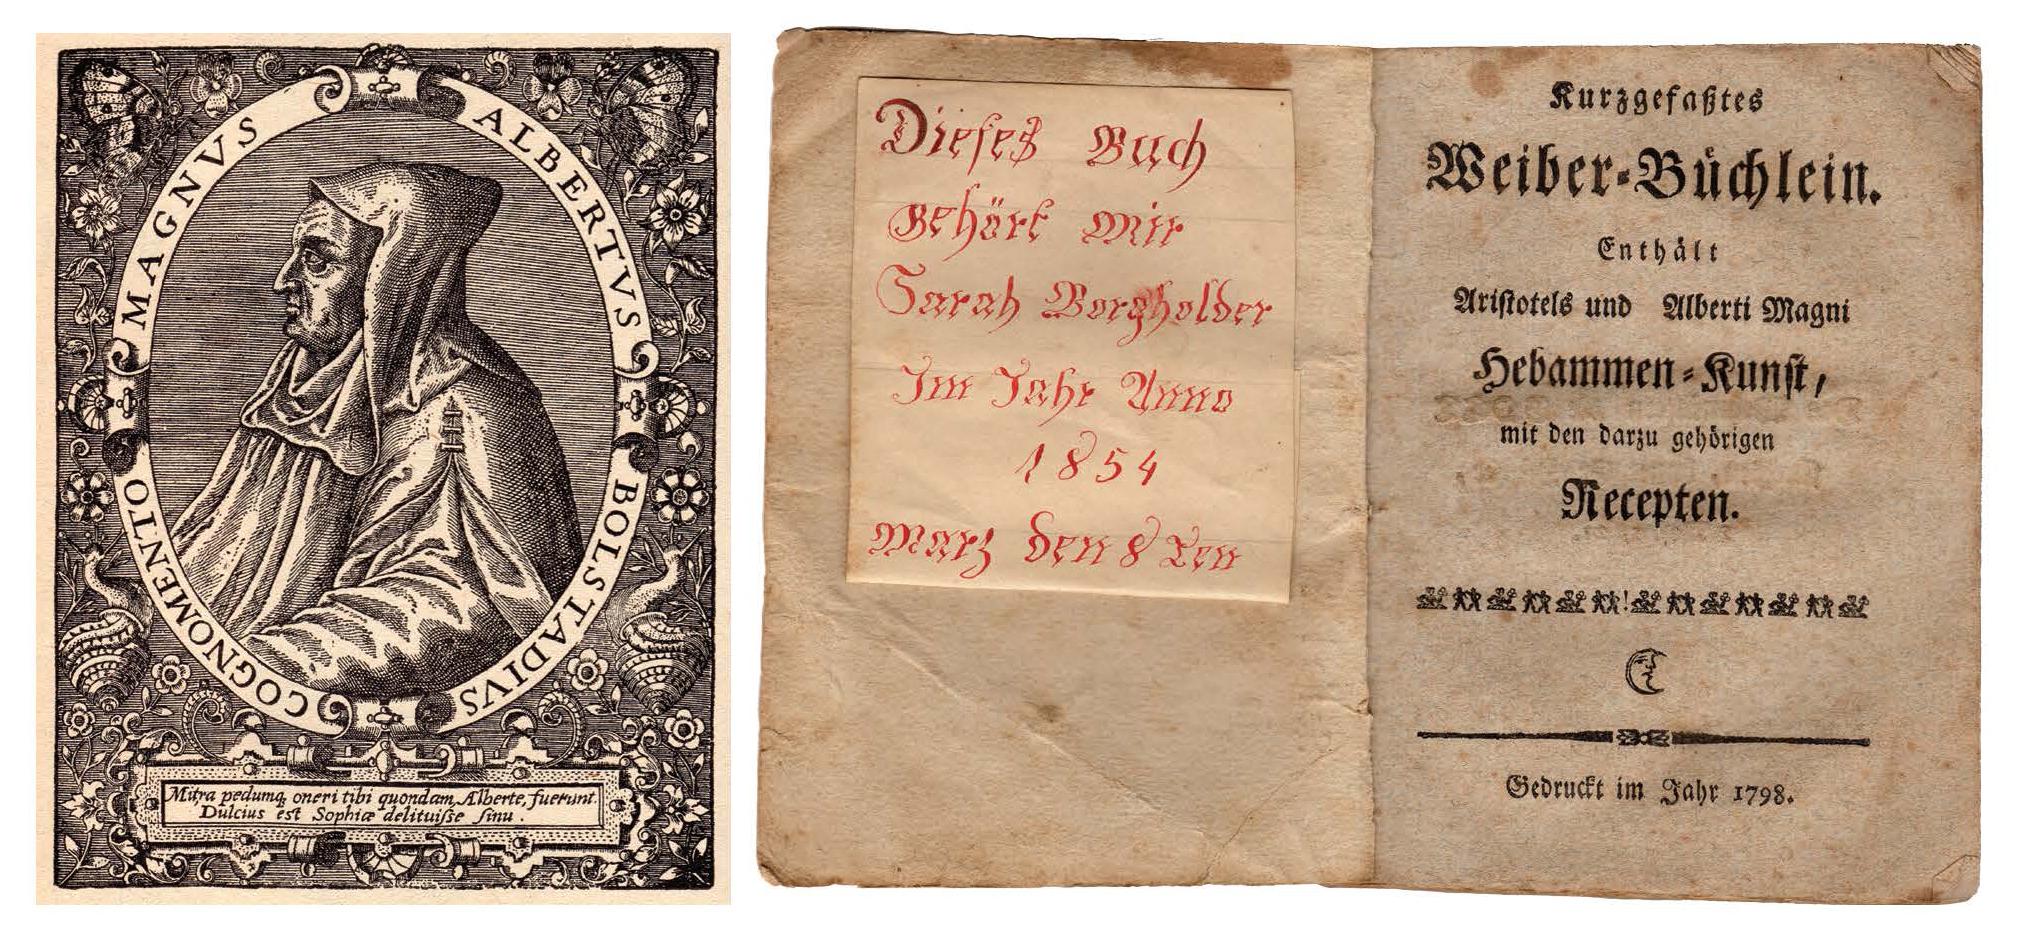 Figure 21:  Left : Portrait of St. Albert the Great, alleged author of several works of medicine, midwifery, and magic. Heilman Collection of Patrick J Donmoyer.   Right :  Kurzgefaßtes Weiber-Büchlein. Enthält Aristotels und Alberti Magni Hebammen Kunst  ( Concise Little Book for Women, Containing the Midwifery of Aristotle and Albertus the Great ), Ephrata, PA 1791. Heilman Collection of Patrick J. Donmoyer, formerly of the Lester P. Breininger Collection.